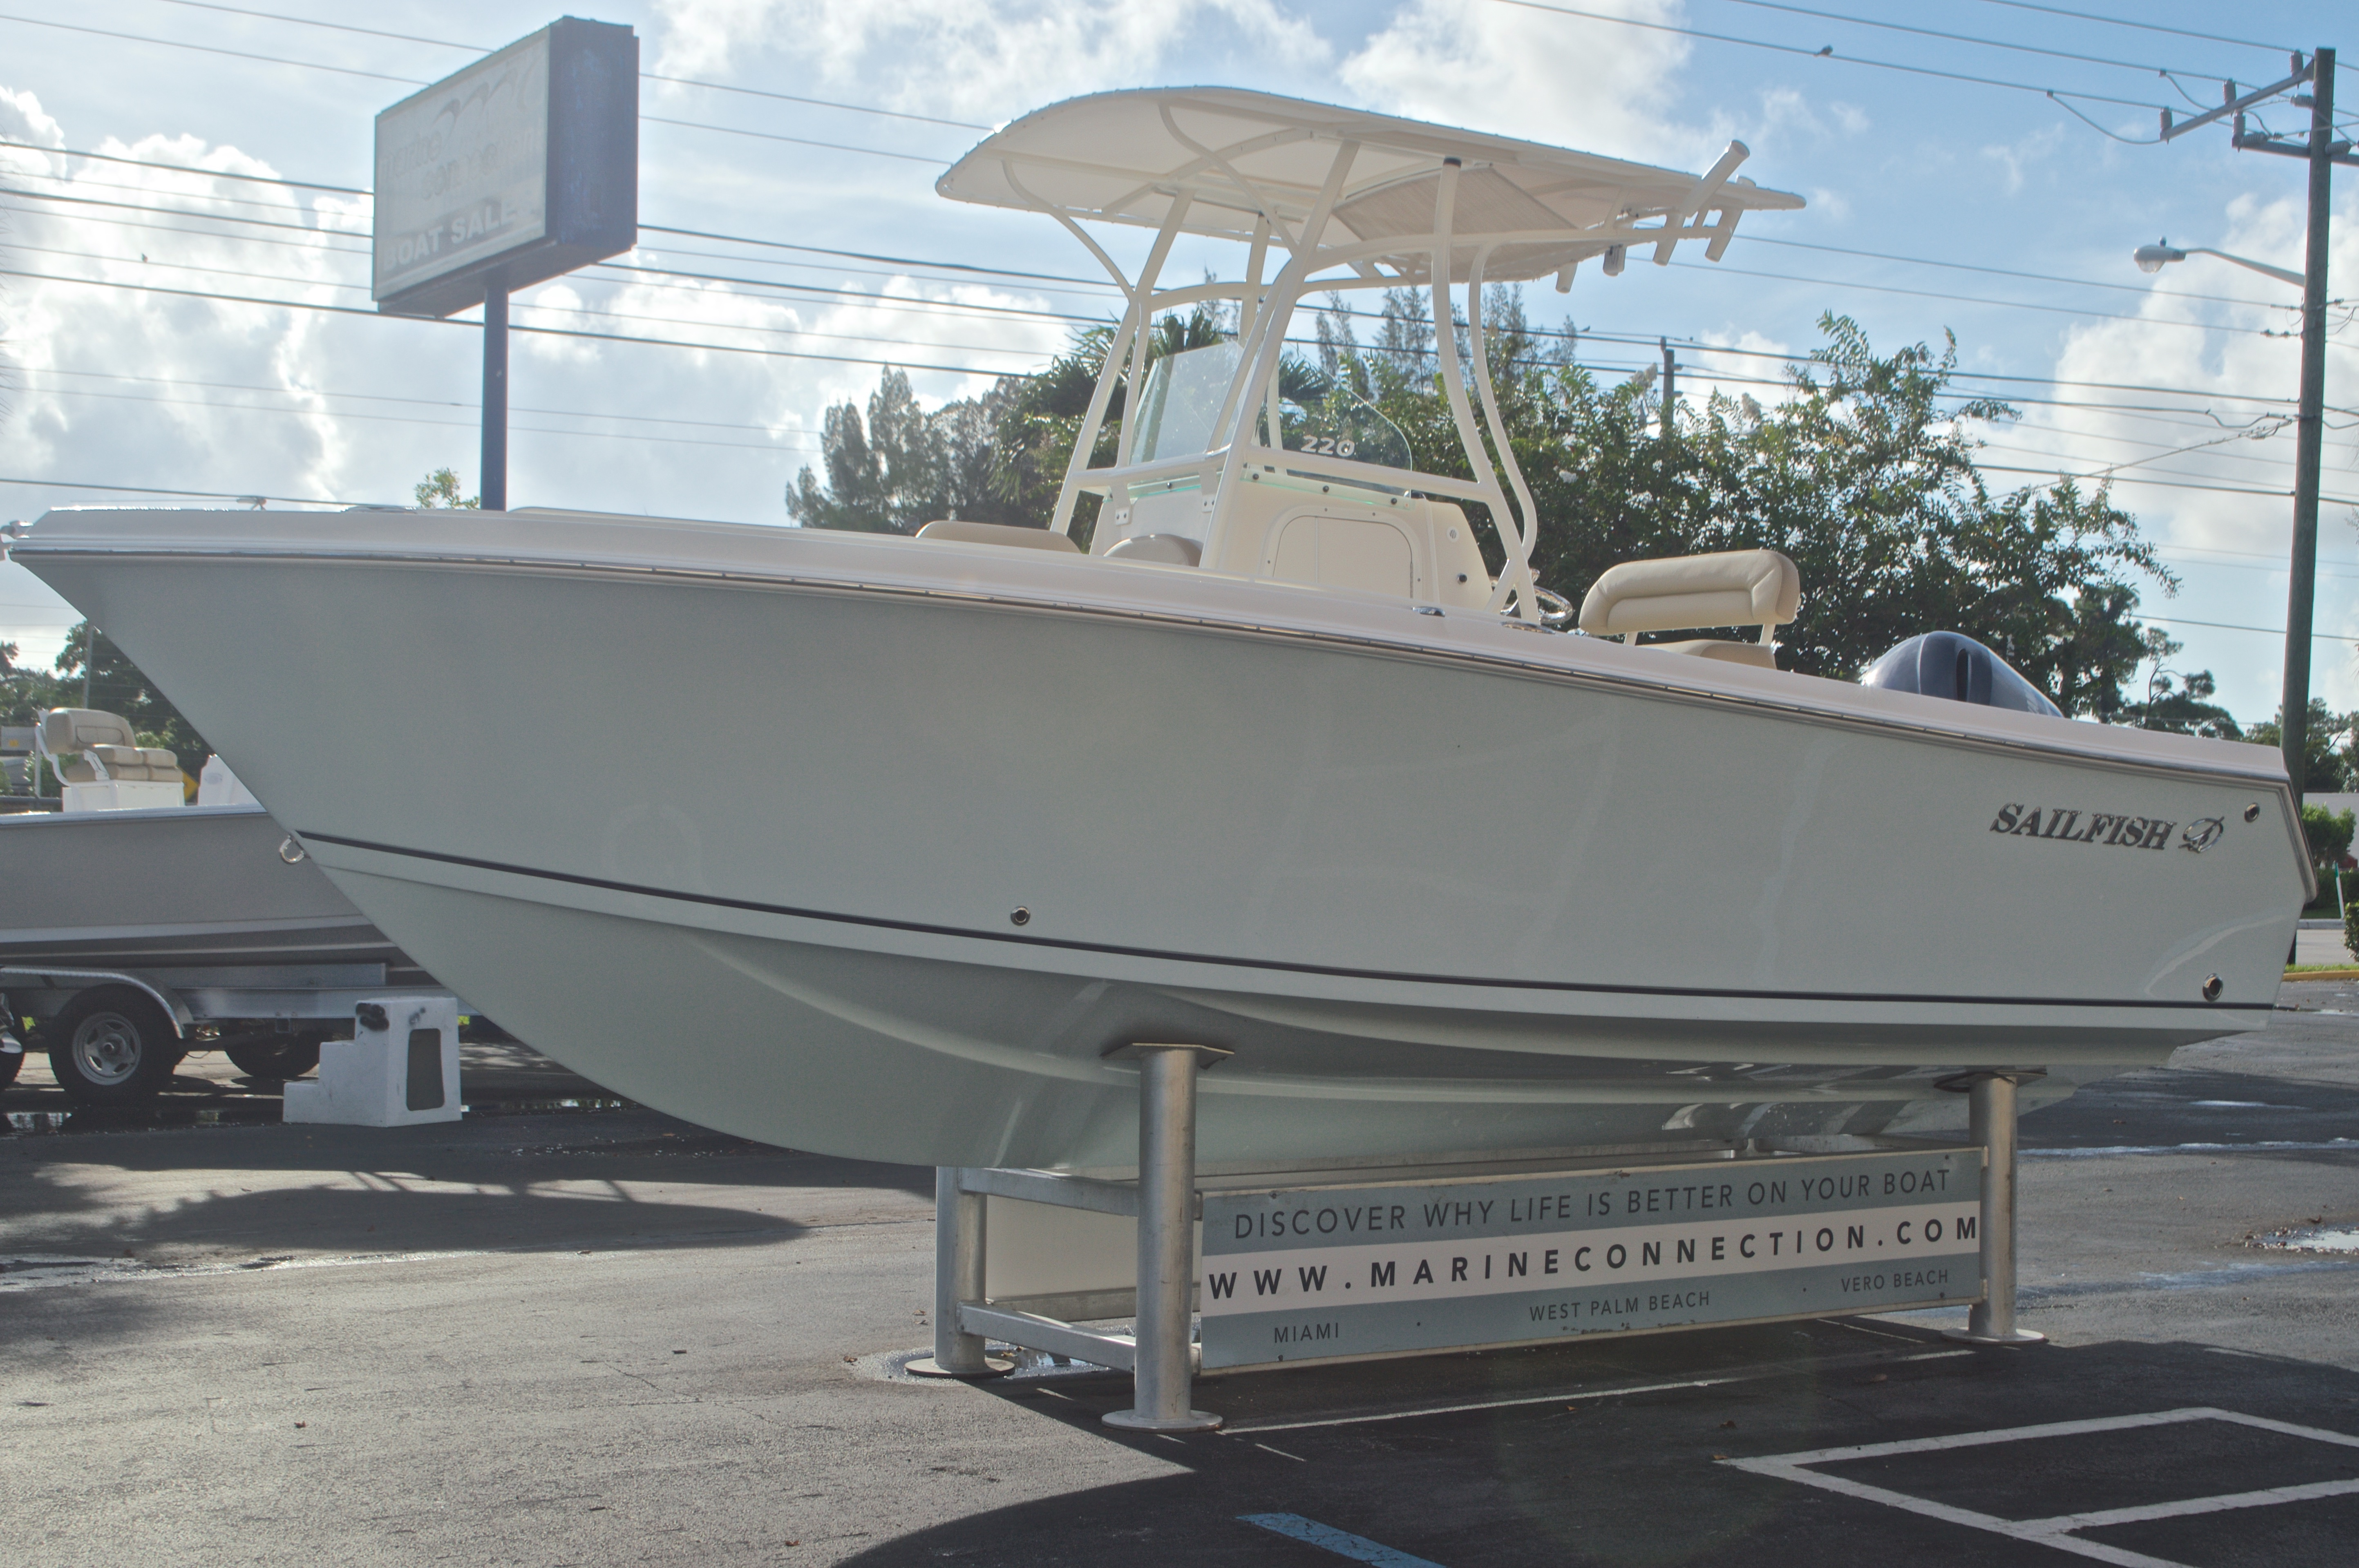 Thumbnail 3 for New 2017 Sailfish 220 CC Center Console boat for sale in Miami, FL